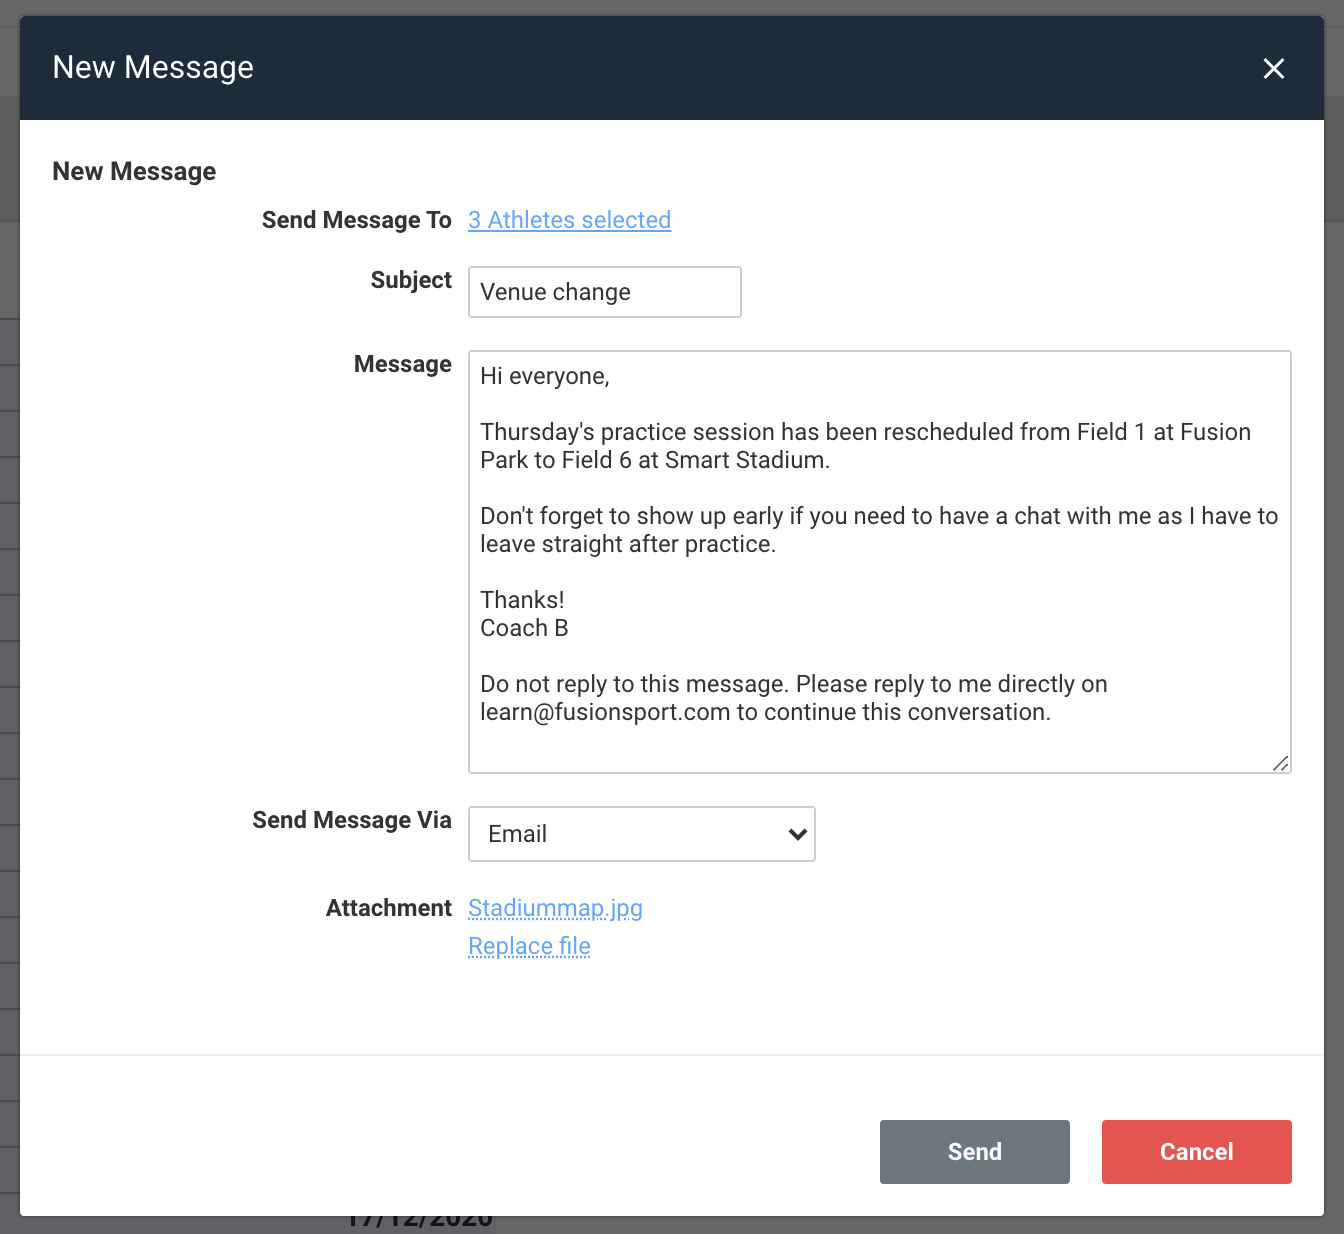 A screenshot showing an example of a new message being composed.